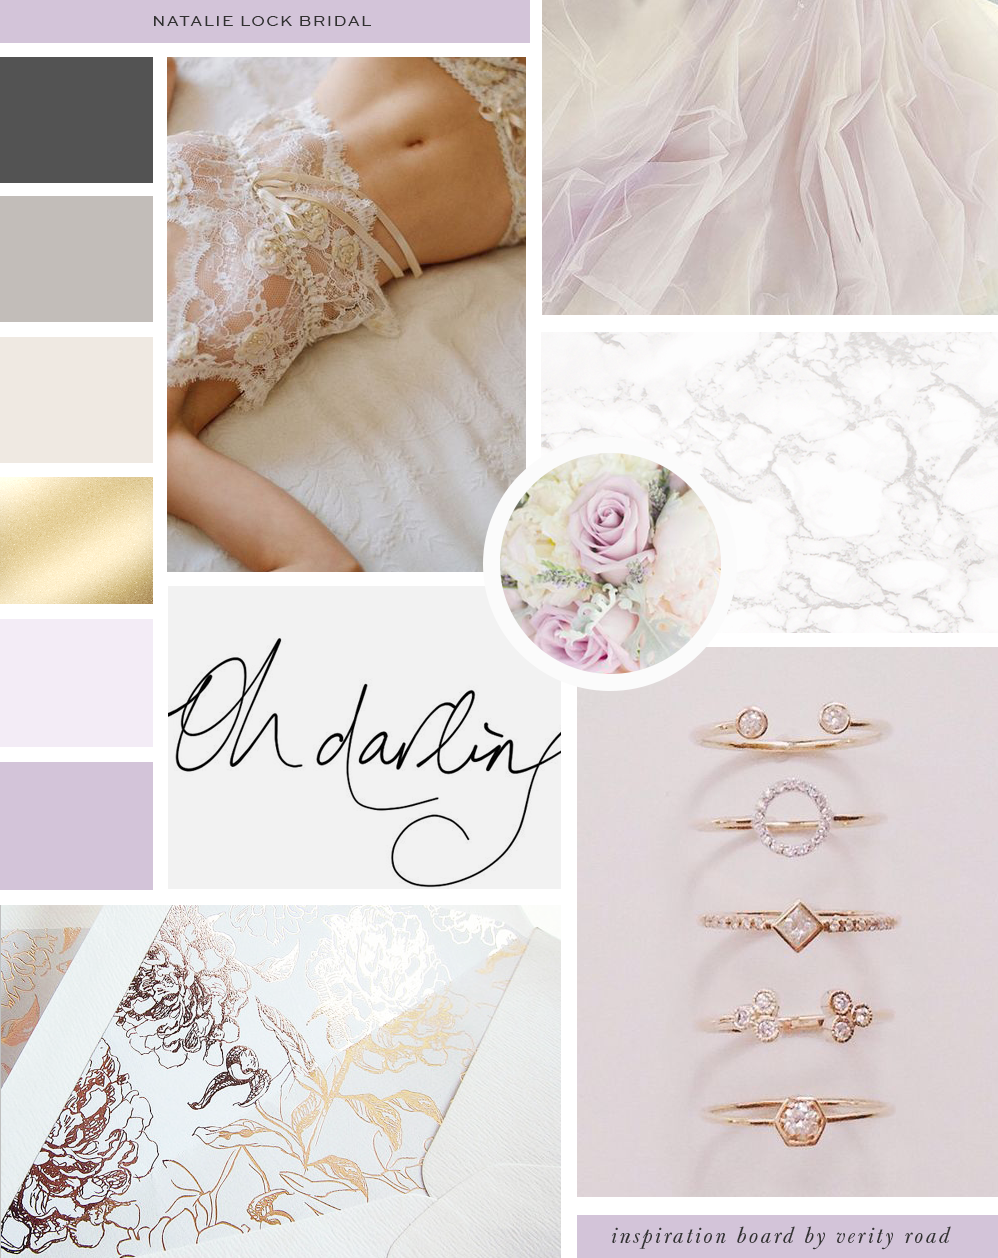 Mood board for bridal accessories creative business and female entrepreneur Natalie Lock. Inspiration for business branding and brand design. Feminine and graceful pretty color palette, lilac and champagne gold, lace and tulle material for this wedding business. Beautiful calligraphy script font. See the verity road portfolio for the brand board, brand style guide, social media branded facebook design, printed business materials and web design. wedding professionals, wedding business, bridal boutique.